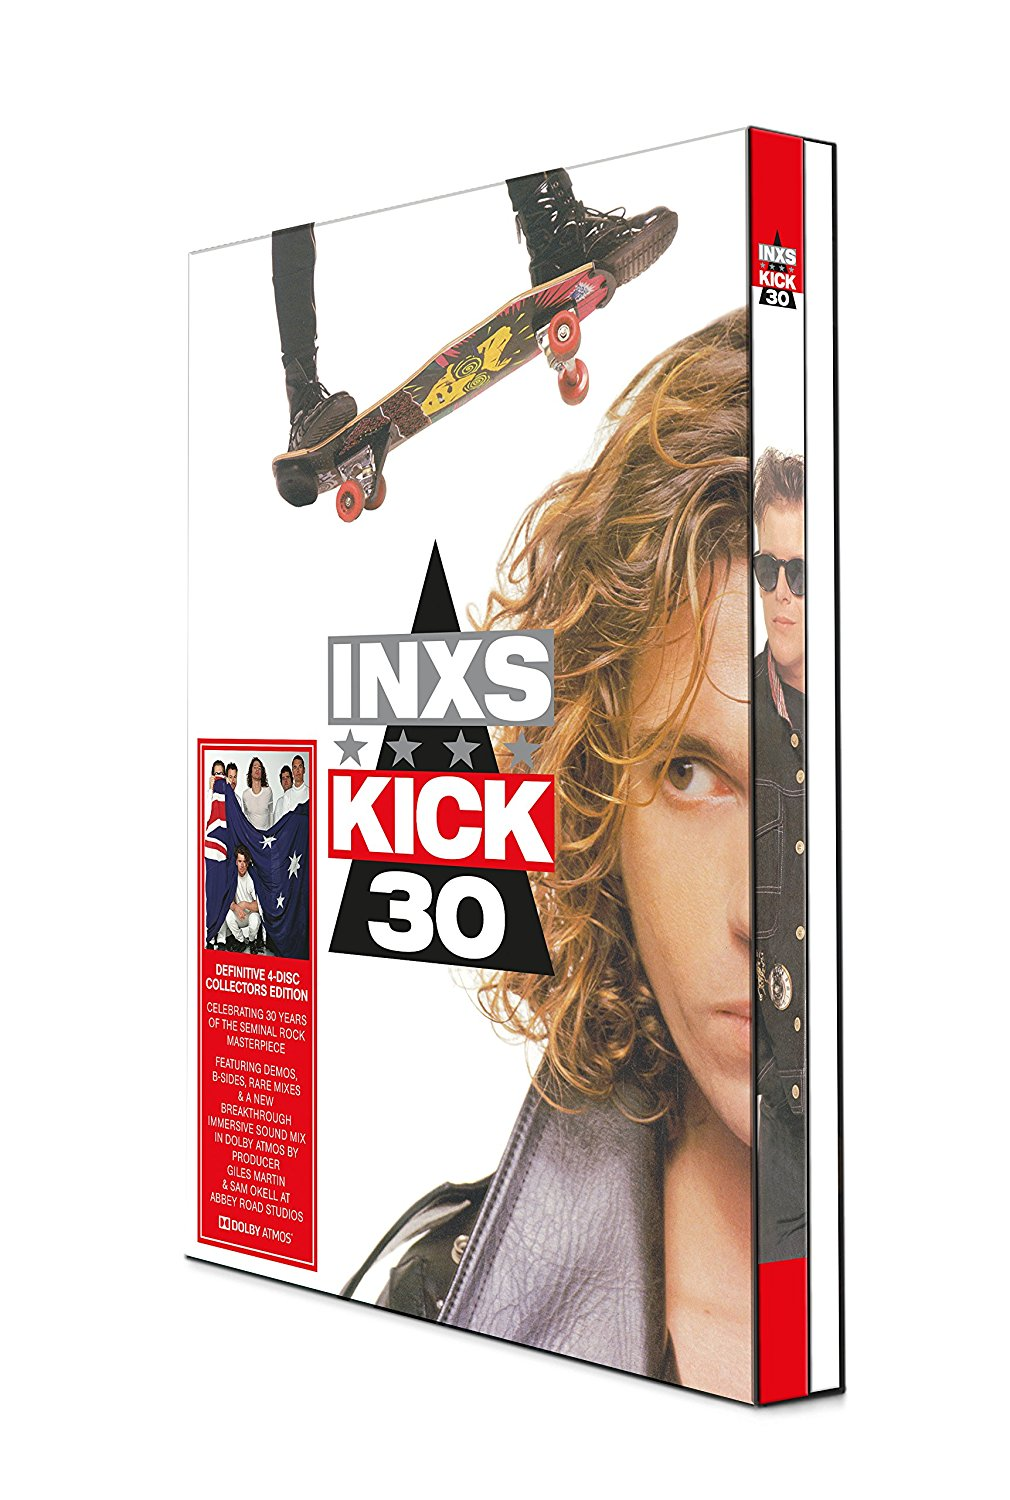 INXS - Kick: 30th Anniversary Edition [Deluxe 3CD/Blu-ray]